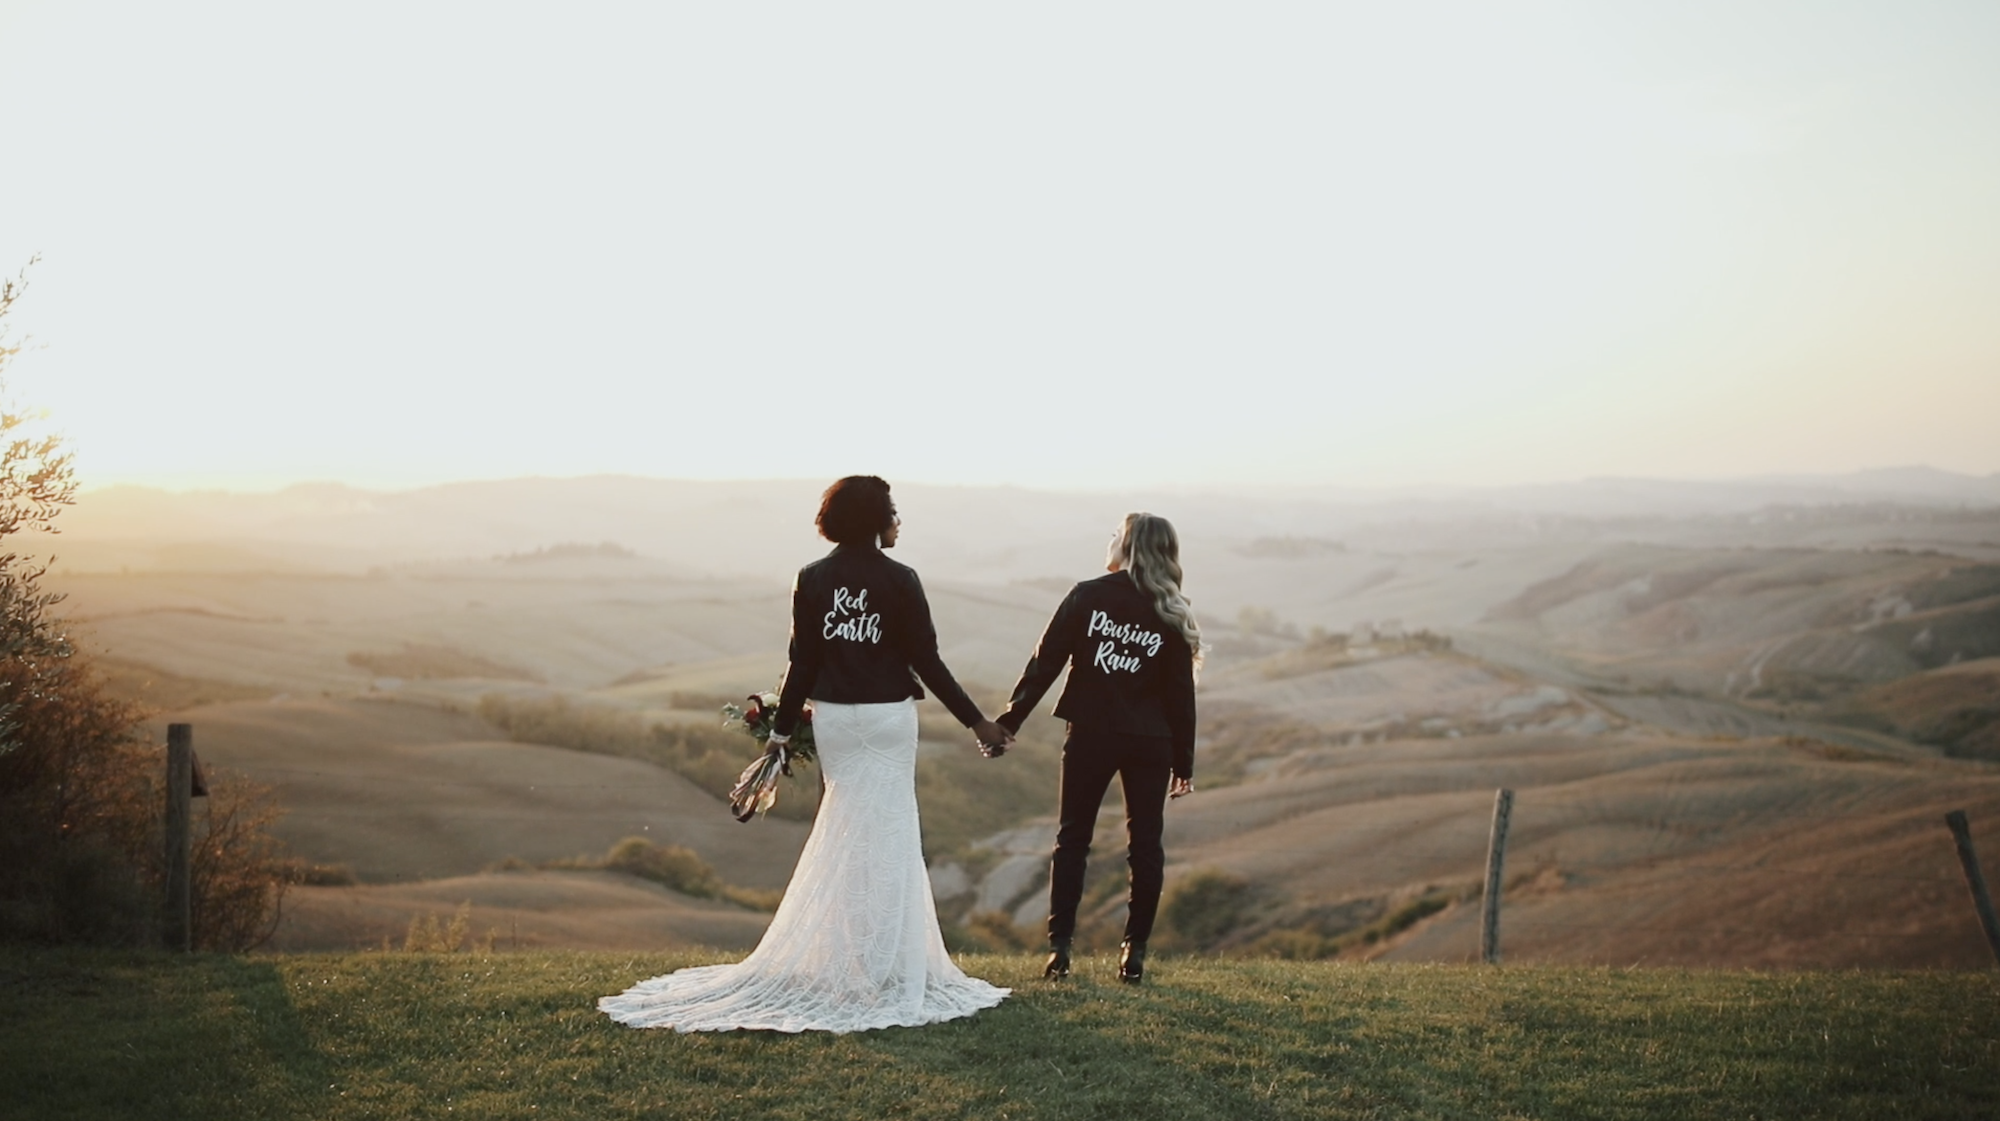 Melinda + Carmen | Province of Siena, Italy | The Lazy Olive